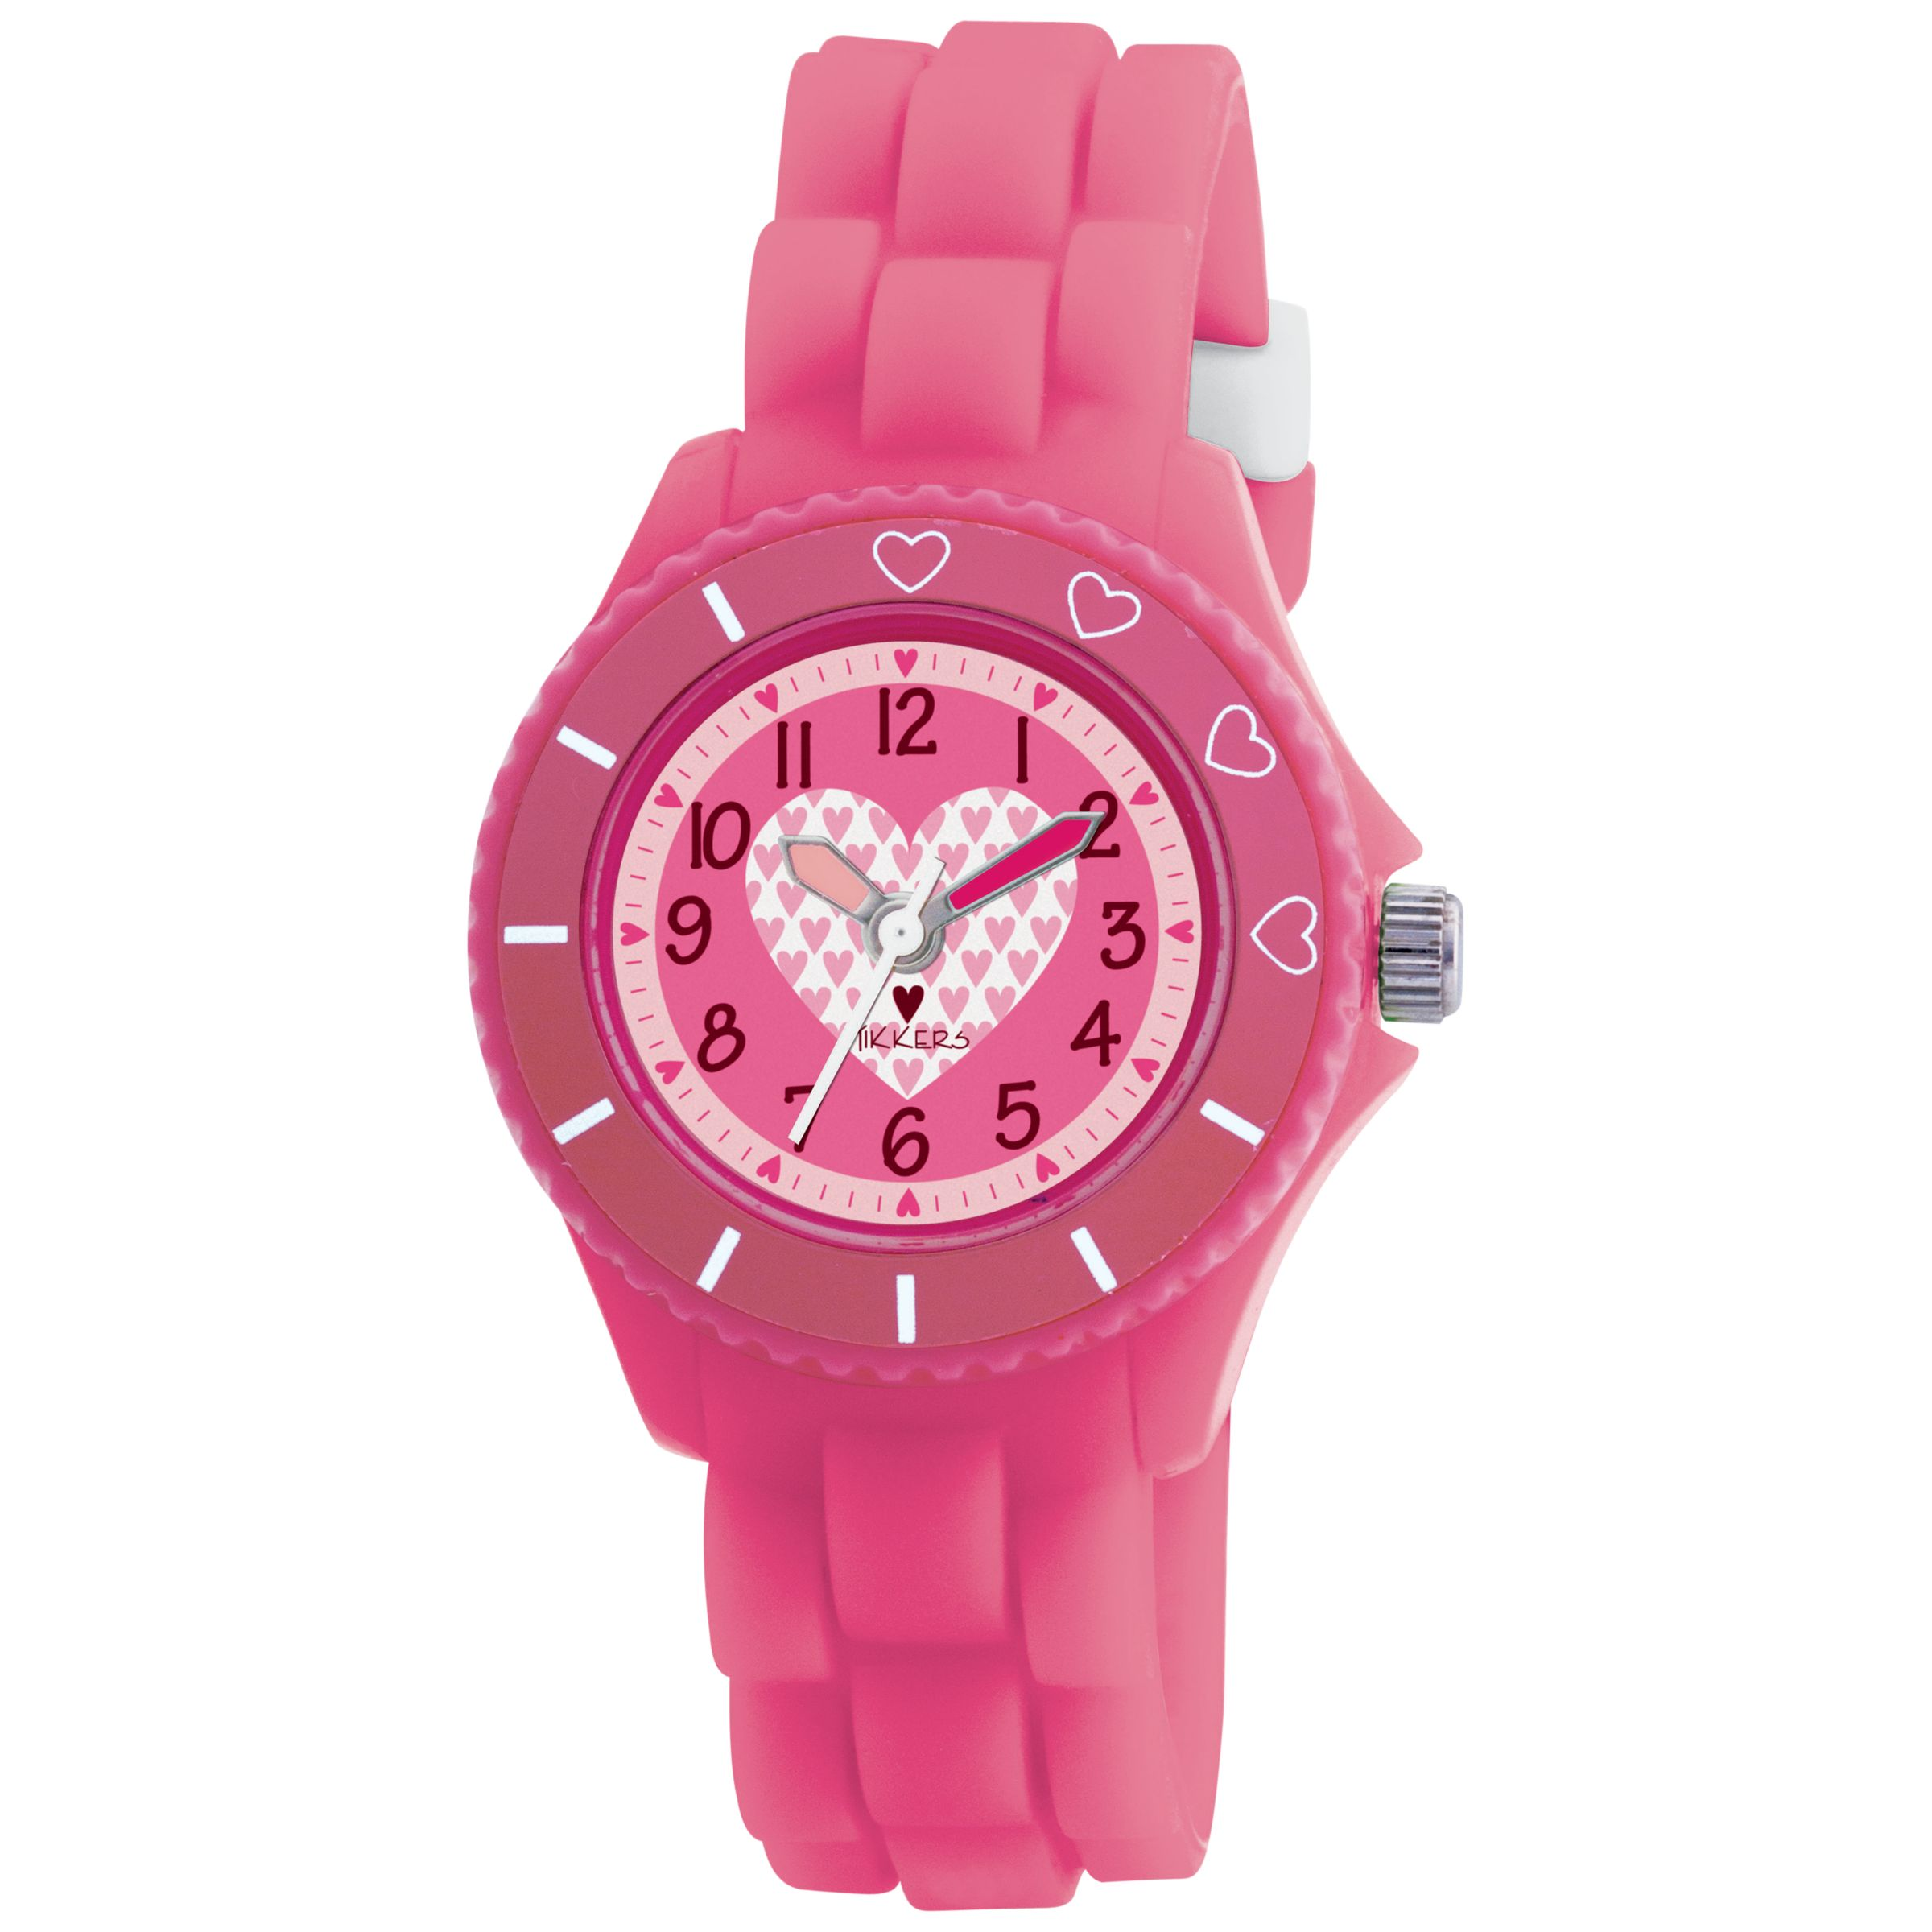 Tikkers TK0023 Kids Heart Rubber Strap Watch, Pink